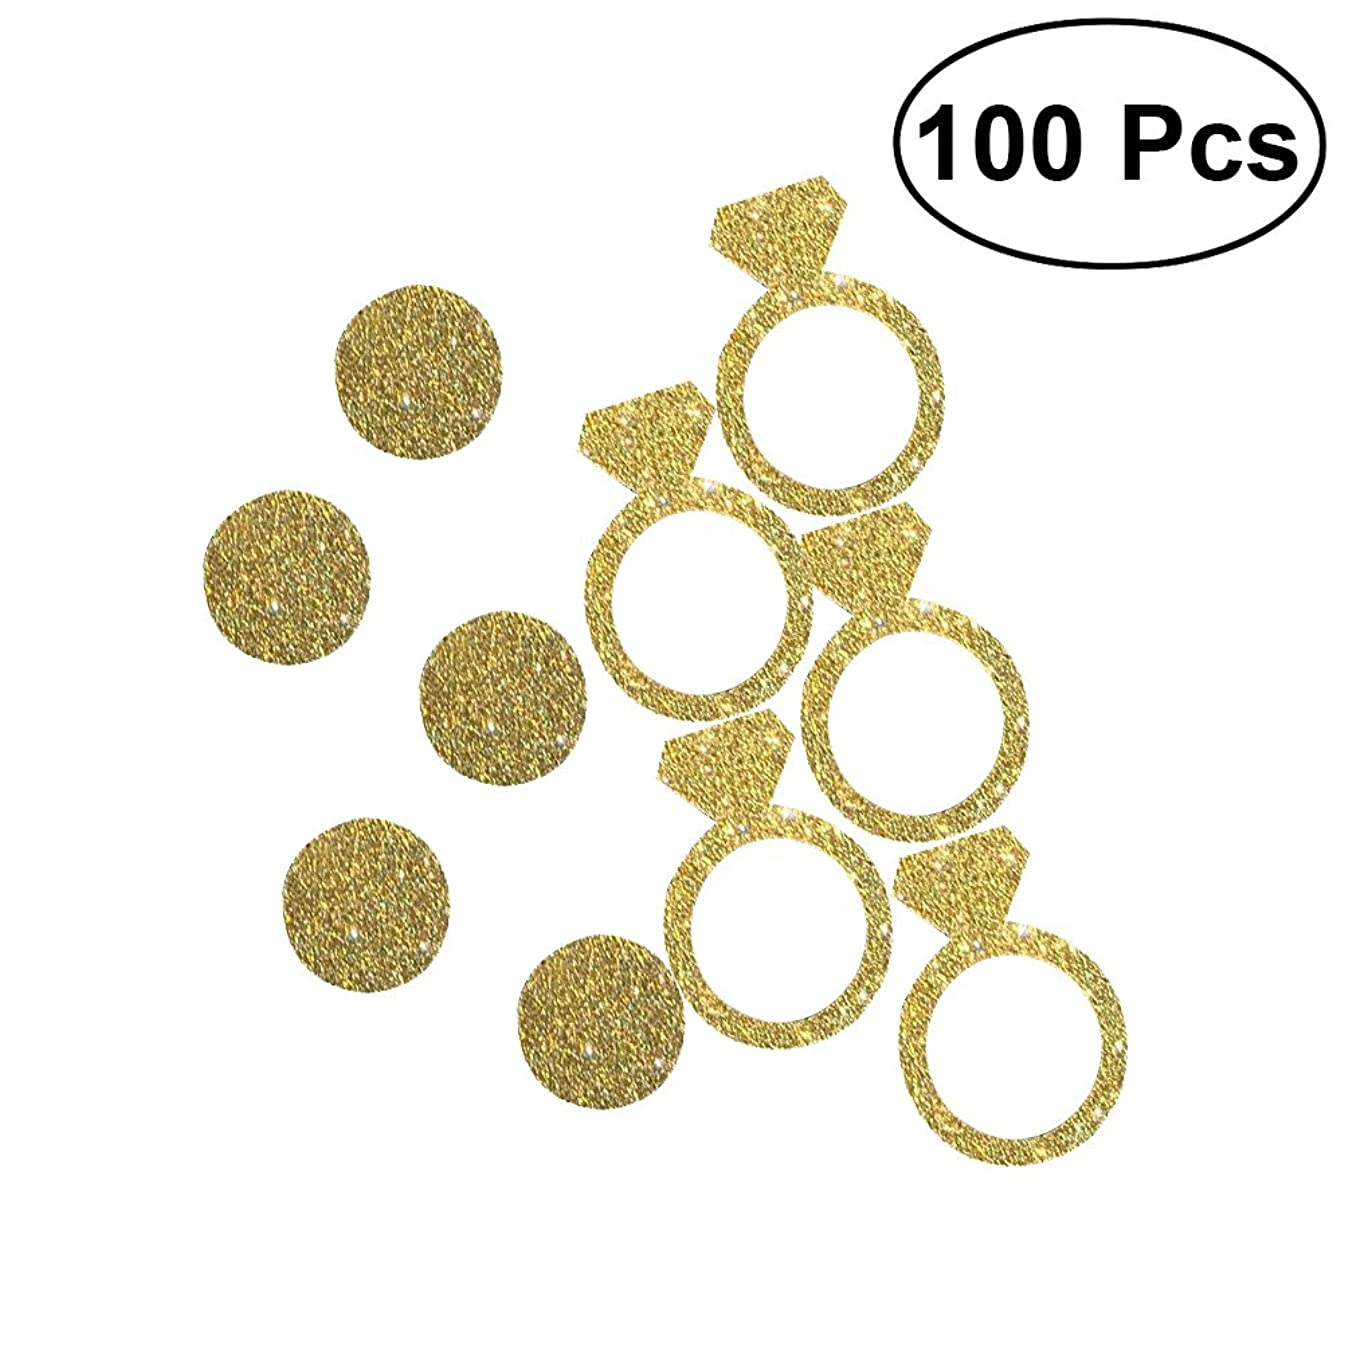 NUOLUX 100pcs Diamond Gold Ring Confetti DIY Glitter Paper Confetti for Wedding Party Decoration